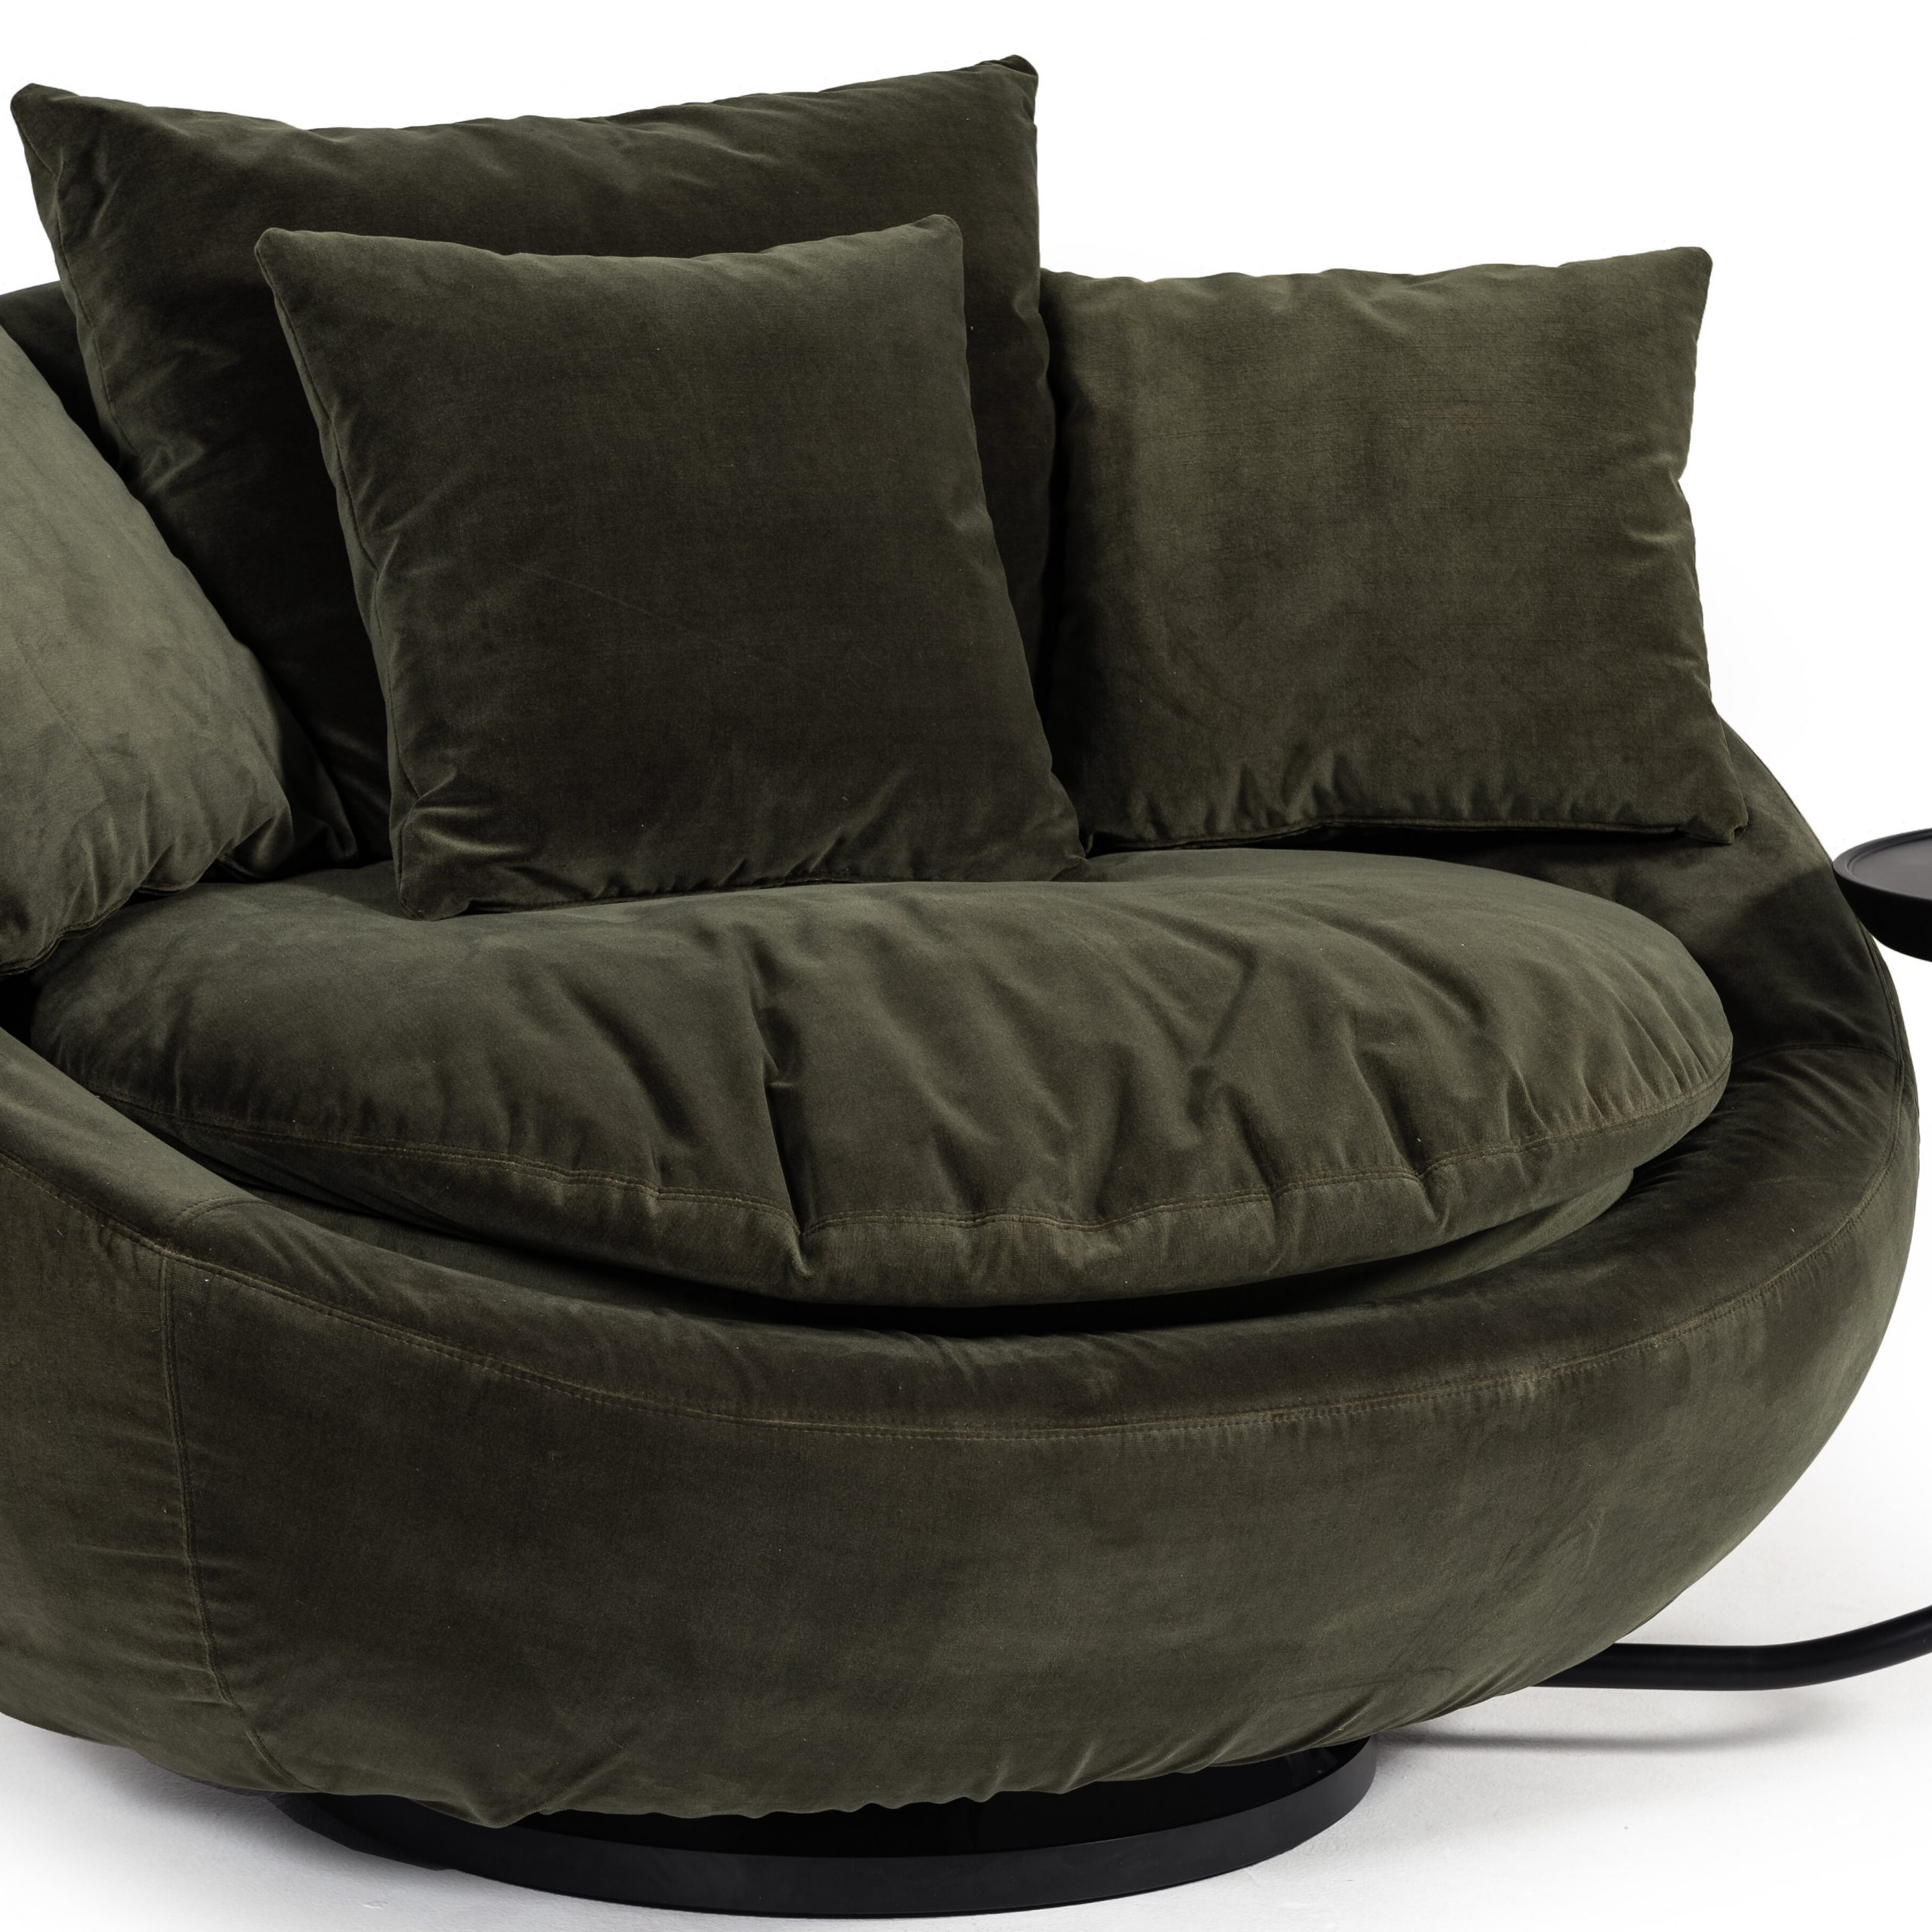 Lennox Round Swivel Chair   Chair Design With Regard To Swivel Sofa Chairs (View 14 of 15)